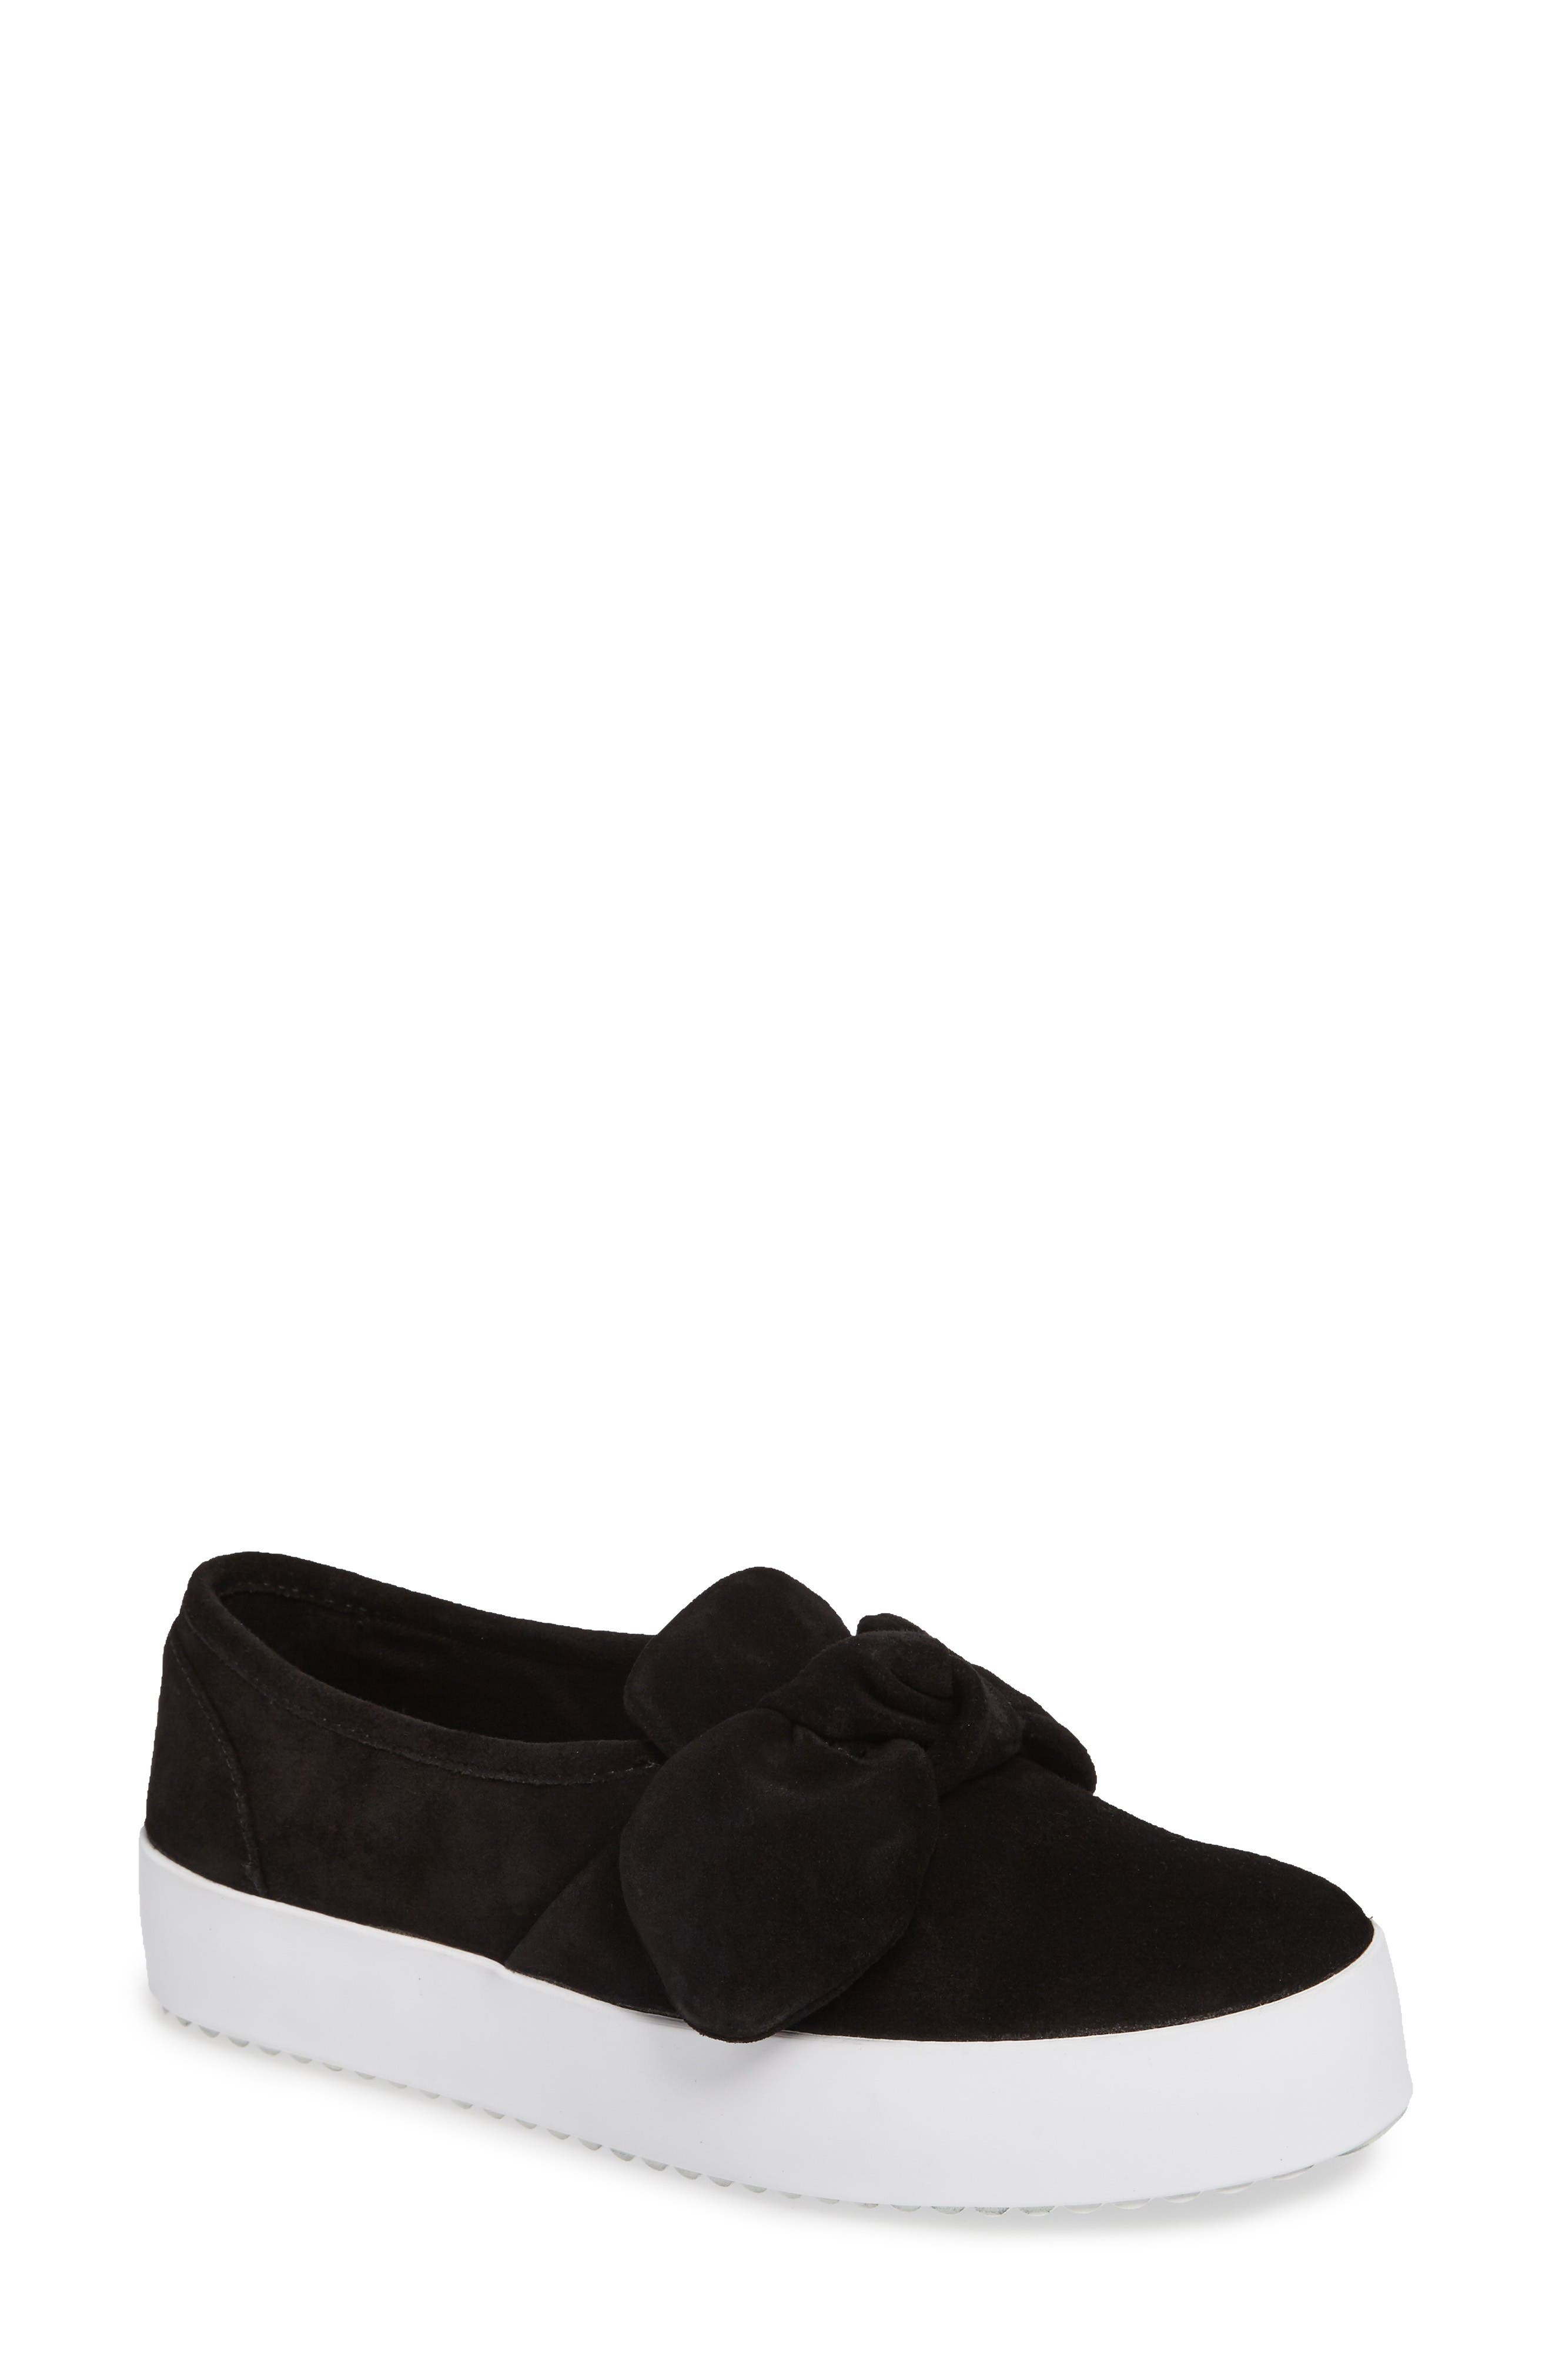 Stacey Bow Platform Sneaker,                         Main,                         color, Black Oiled Suede